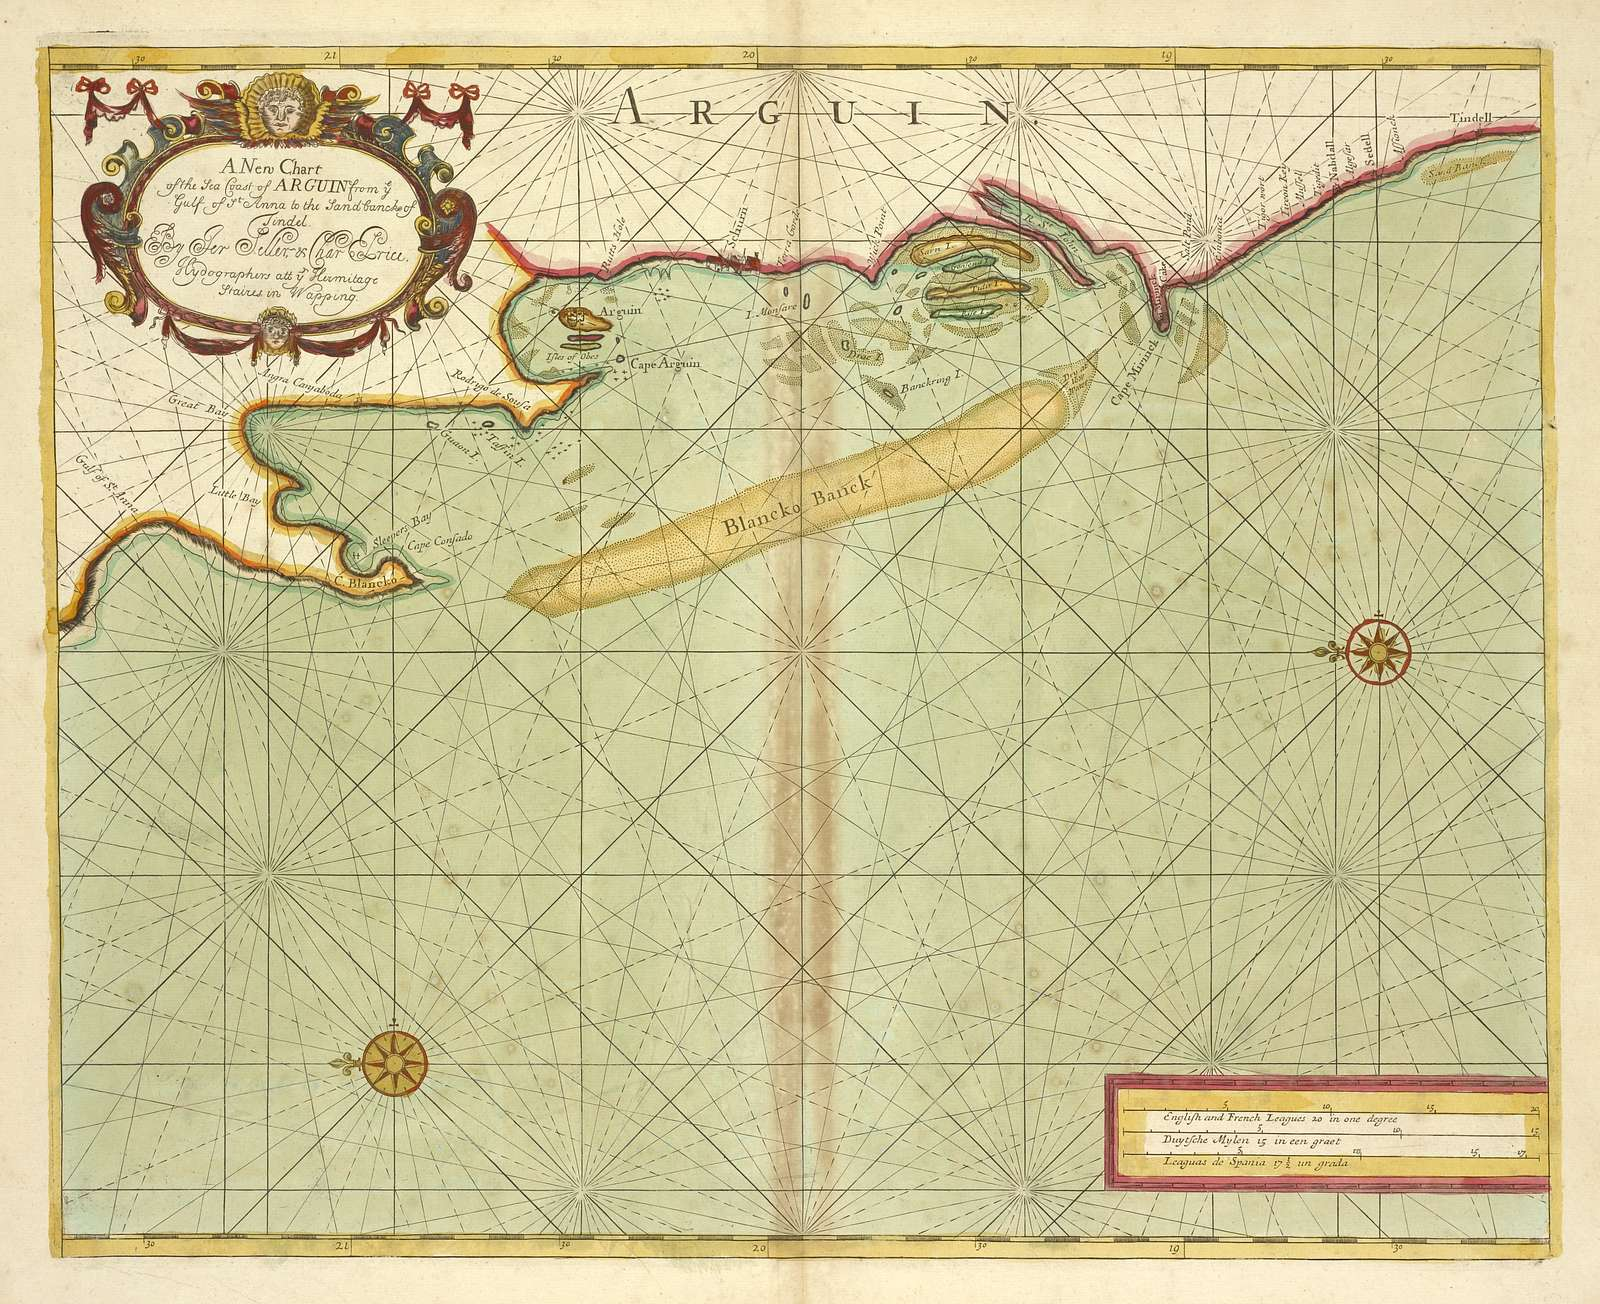 A new chart of the sea coast of ARGUIN from Gulf of Anna to the Land bank of Tindel